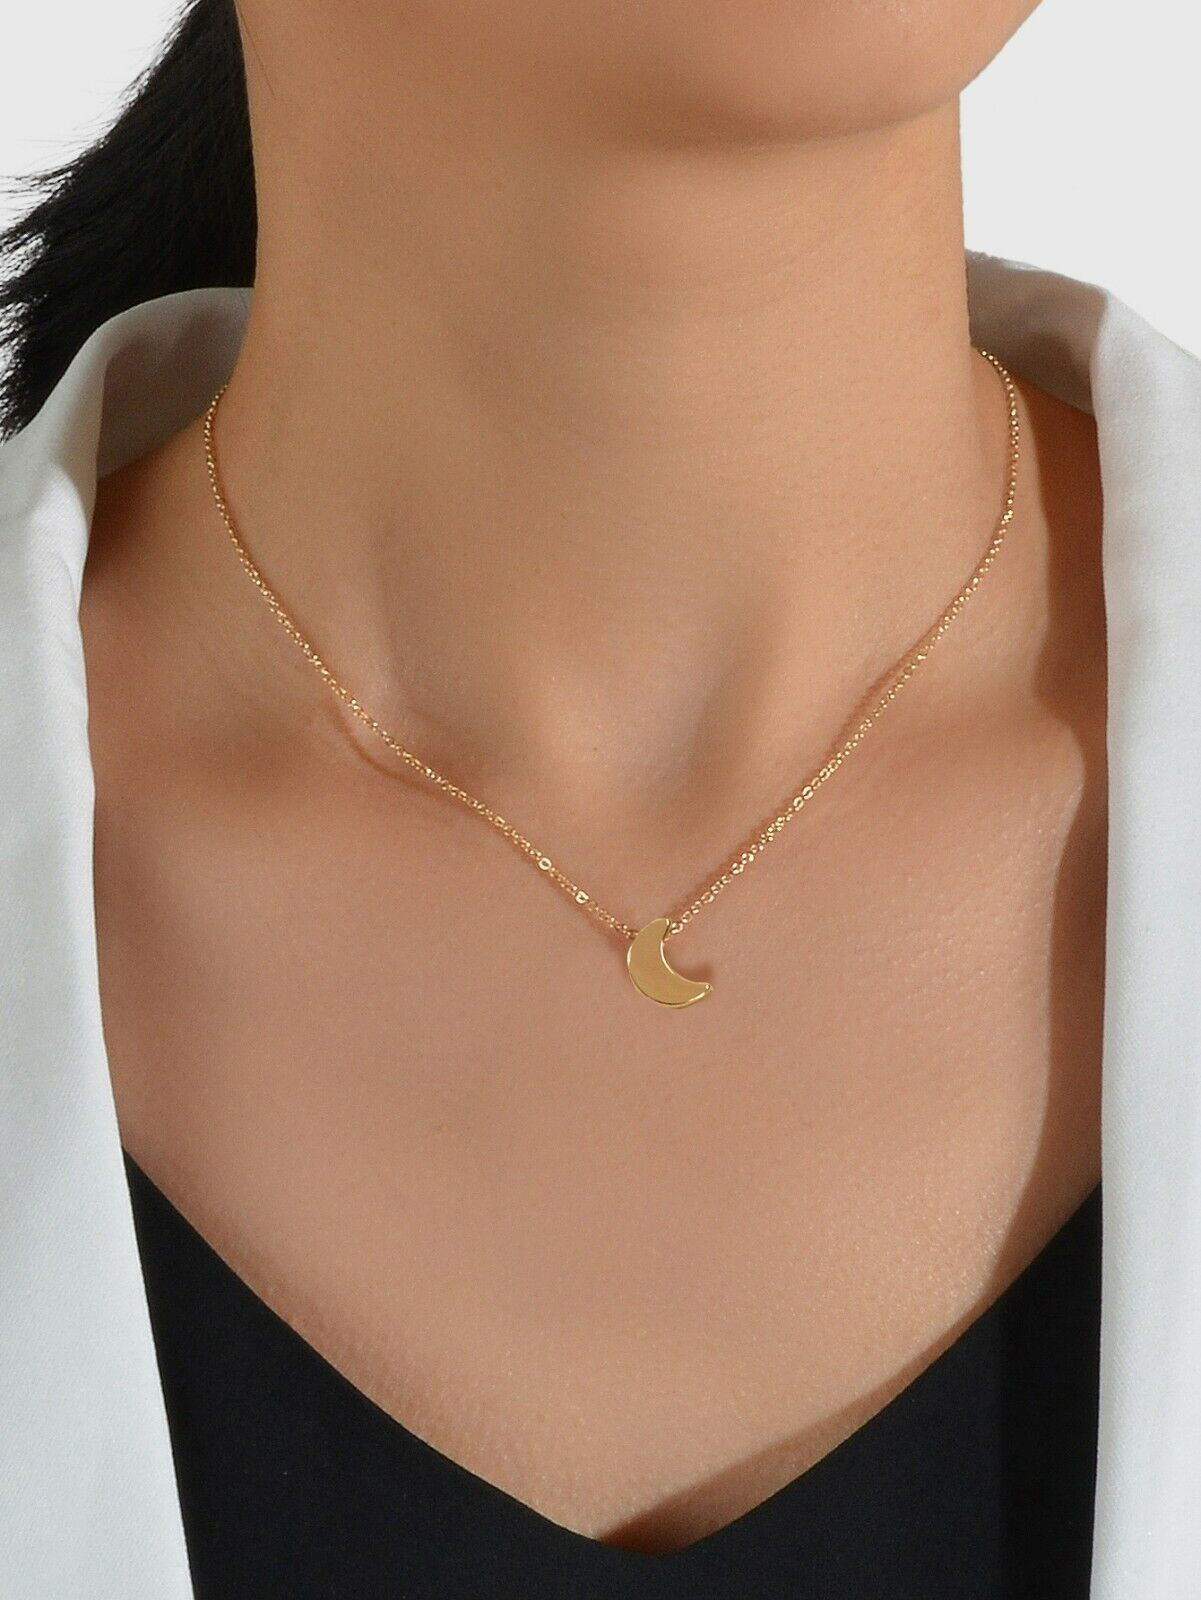 Jewellery - 90s Gold Silver Color Chain With Tiny Moon Charm Necklace Jewellery Gifts Choker